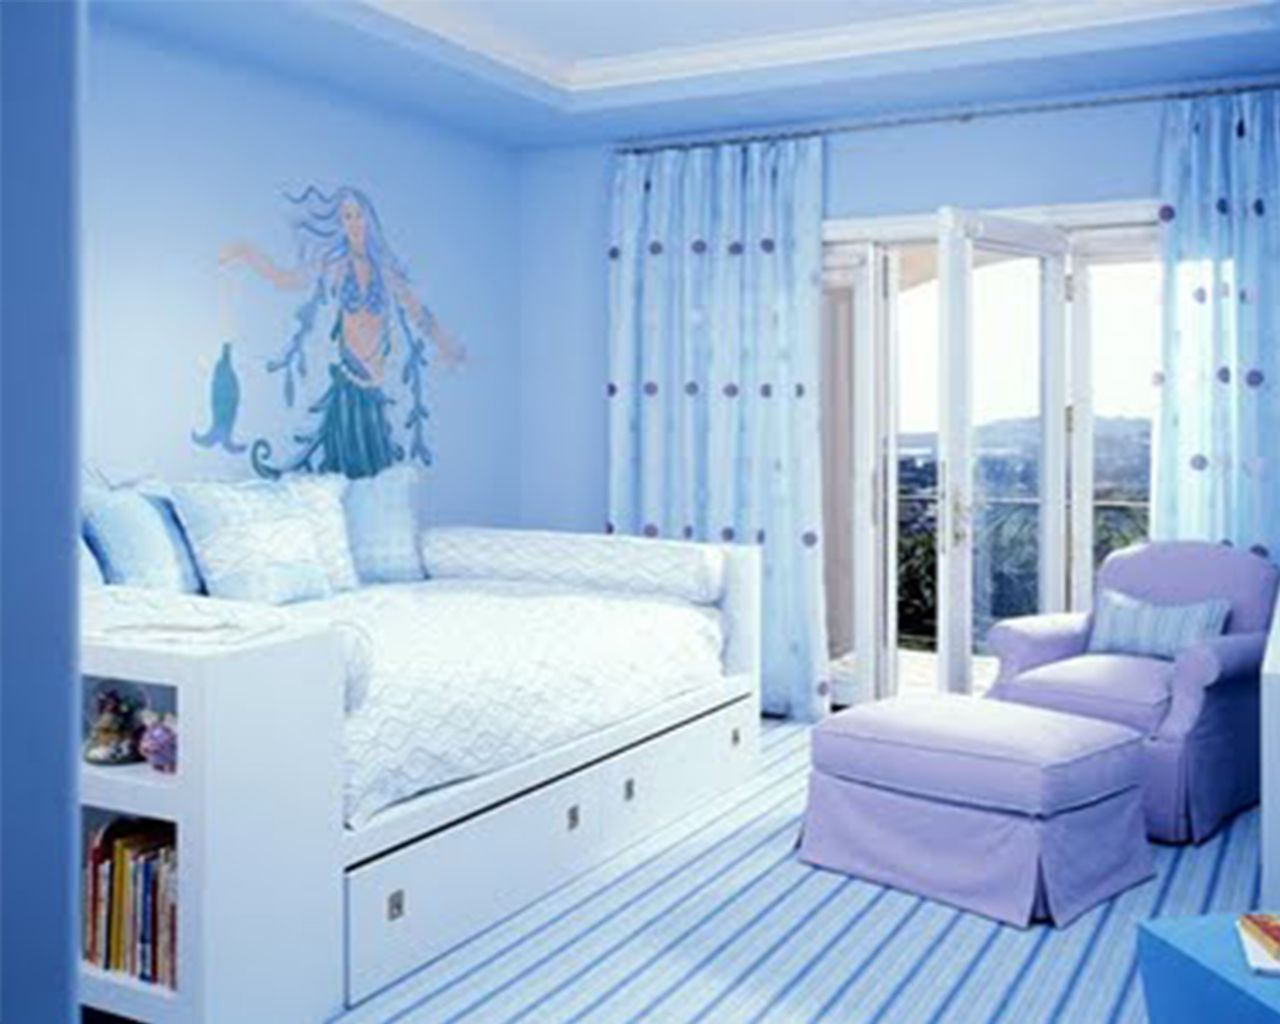 Bedroom : Bedroom Ideas For Teenage Girls Kids Twin Beds Cool Loft .